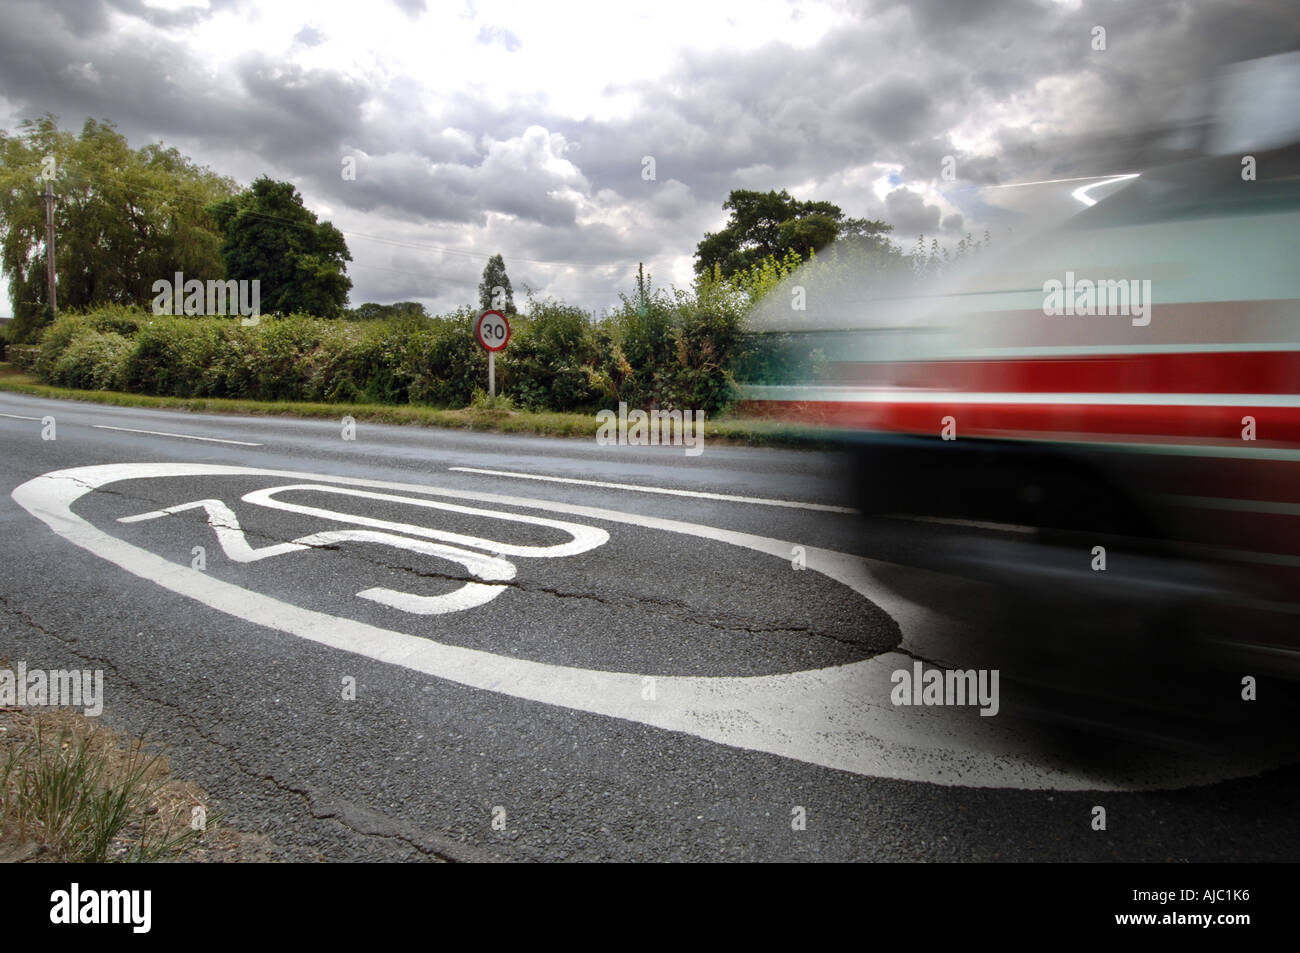 Blurred speeding car passes 30mph speed limit sign painted on road - Stock Image